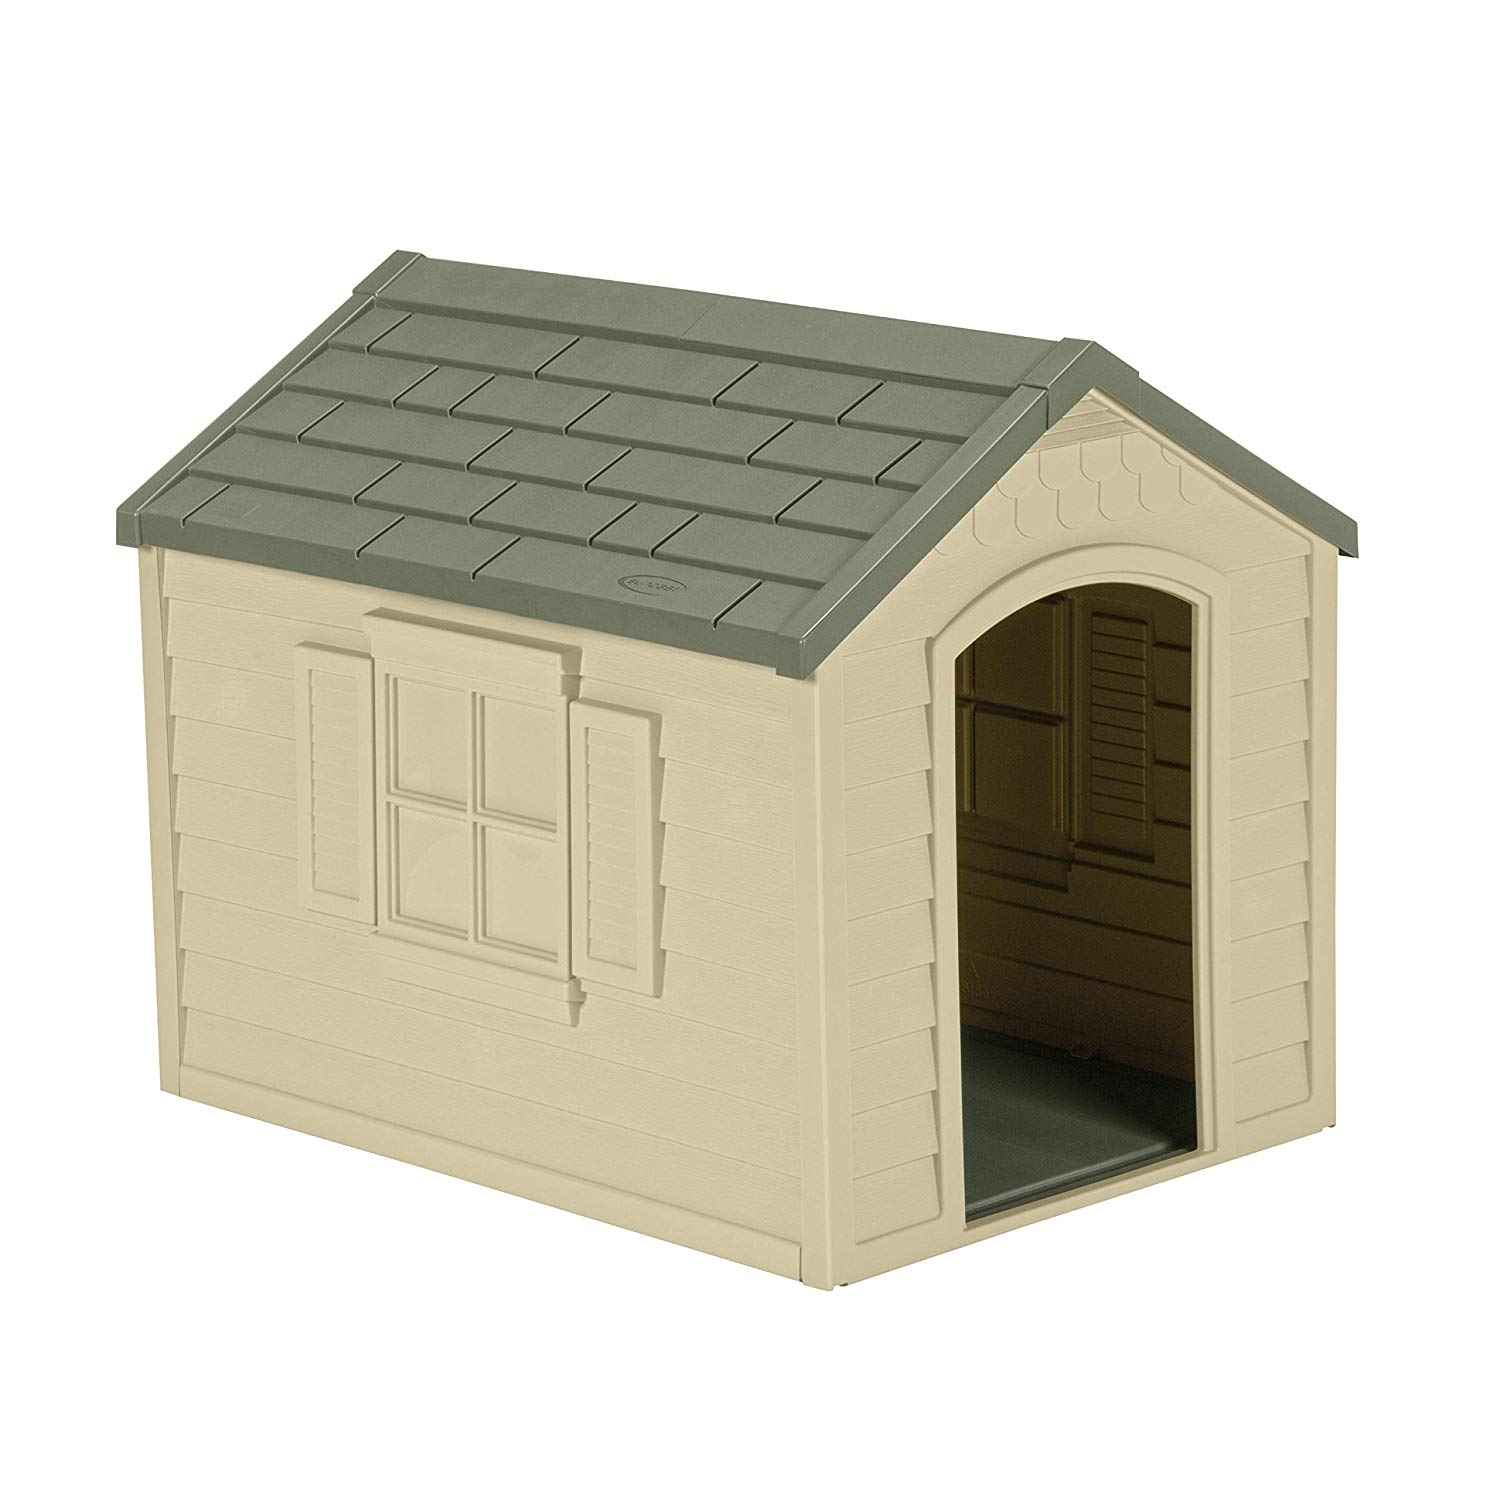 Suncast Outdoor Dog House - Perfect for Backyards